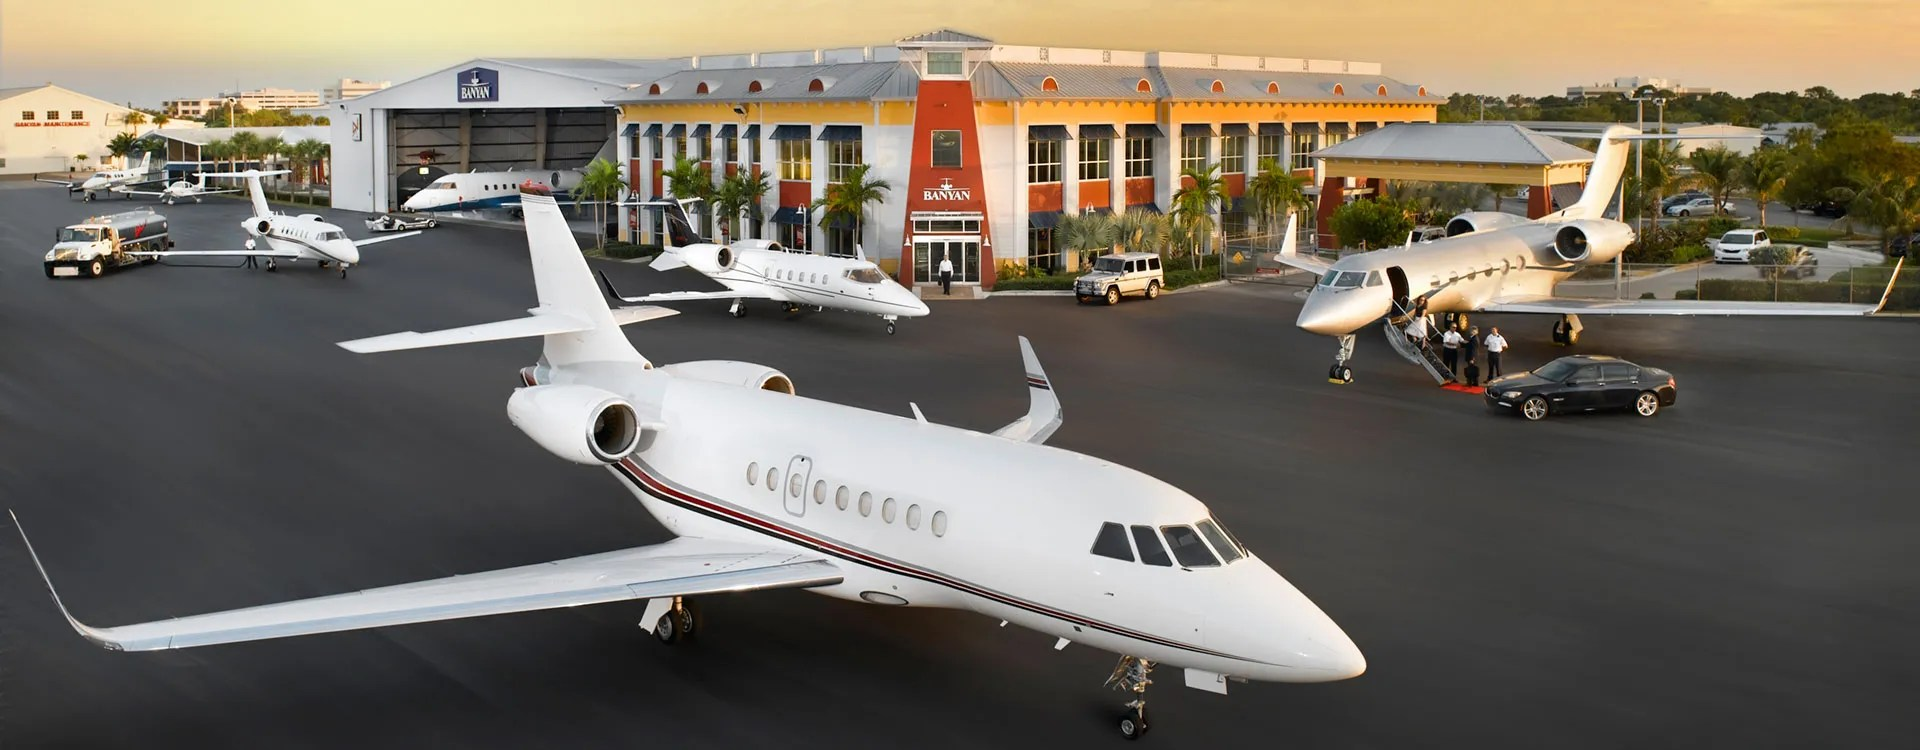 South Florida FBO Voted #1 - Banyan Air Service